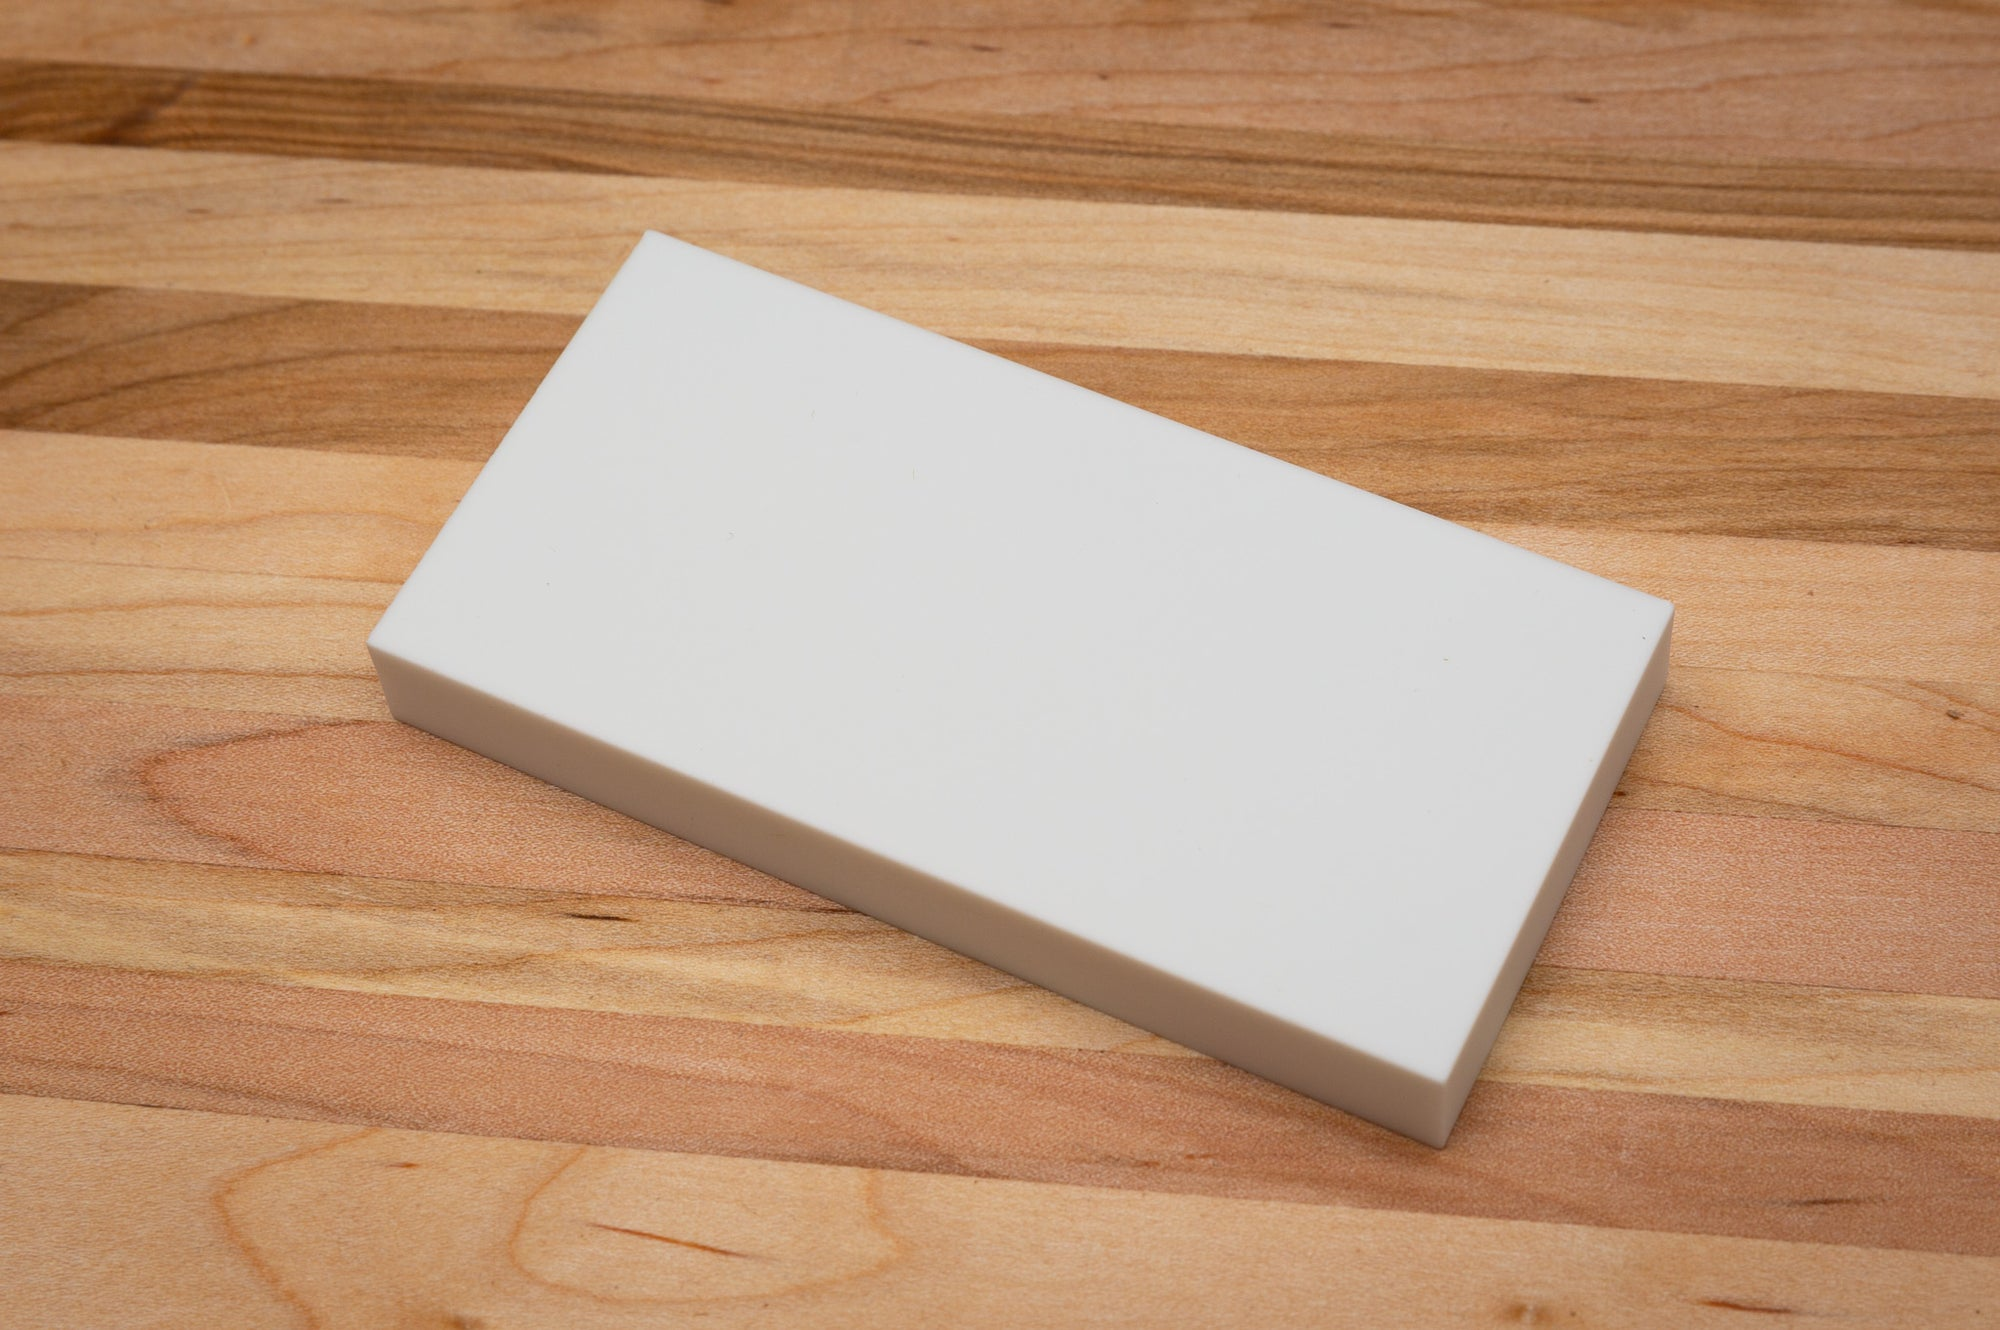 Idahone Ceramic Sharpening Stone, Fine, Small, Canada